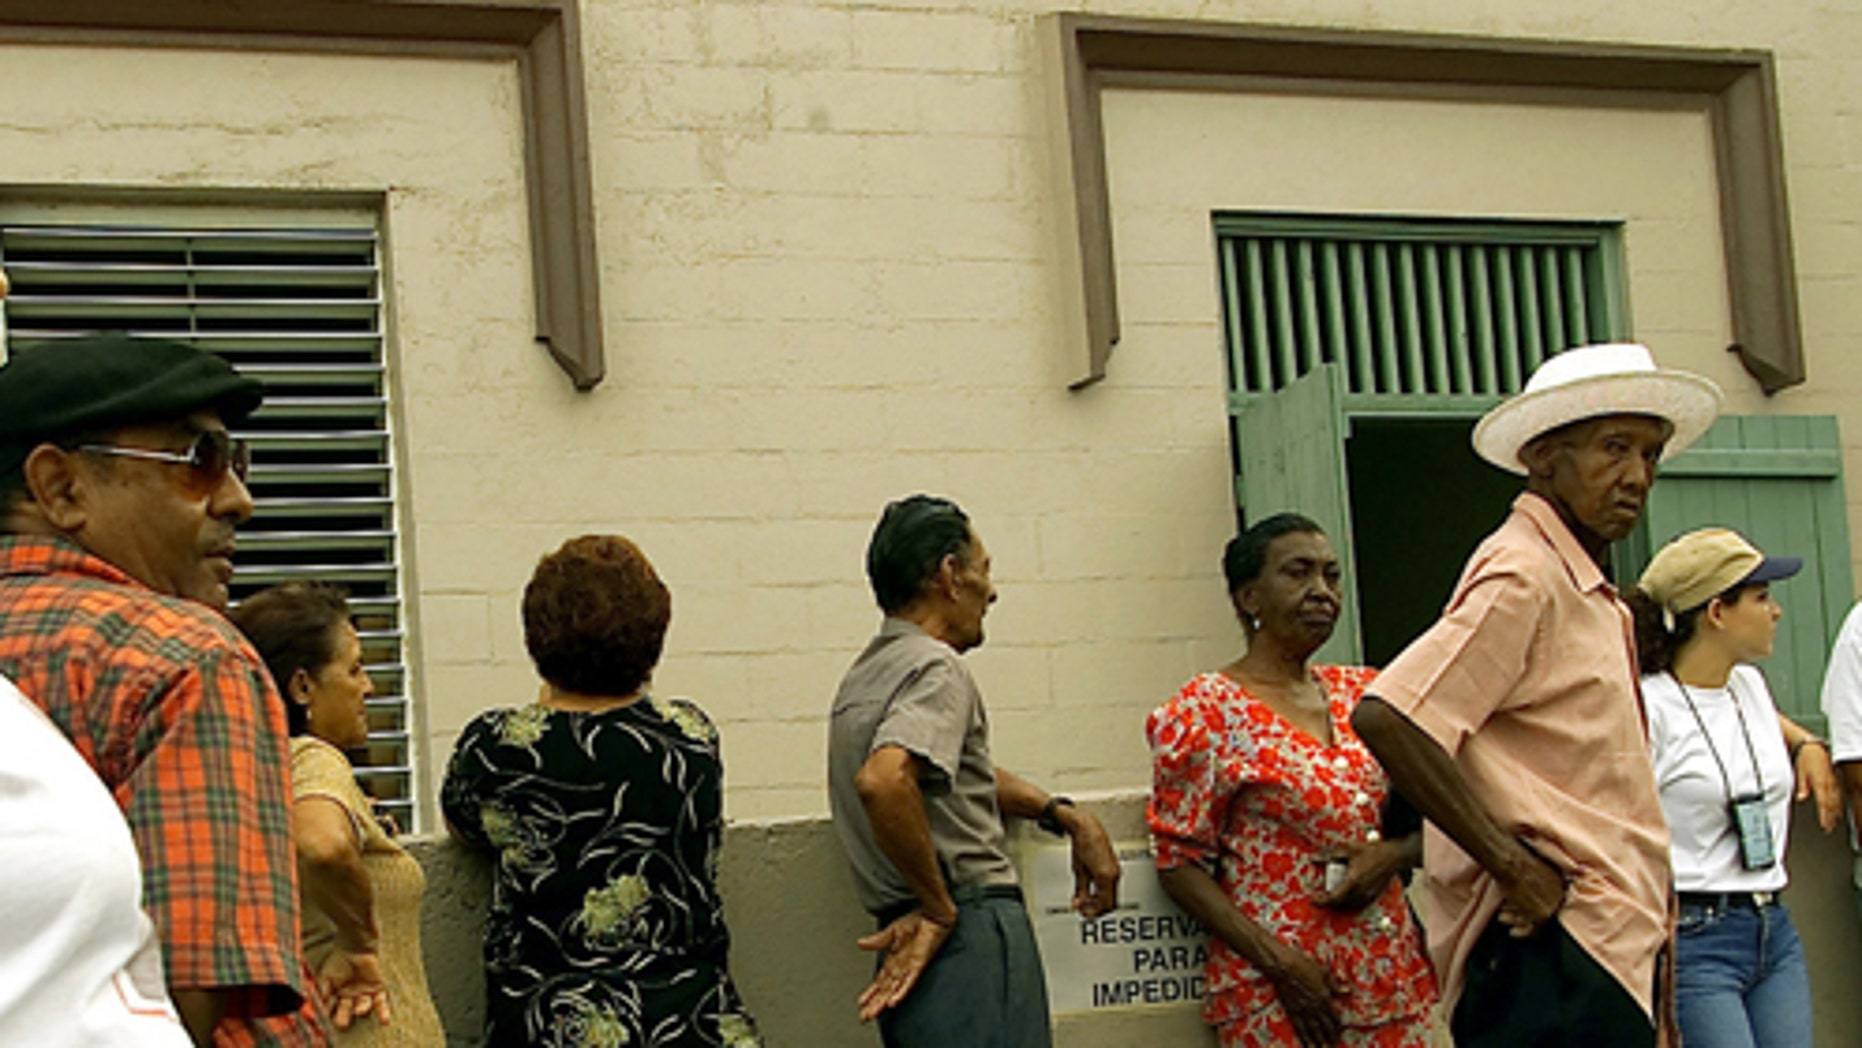 392573 03: (Puerto Rico Out) Vieques Residents Line Up At Polling Stations To Cast Their Vote In A Non- Binding Referendum Over The Future Of Navy Bombing Exercises July 29, 2001 On The Island Of Vieques. Puerto Rico. Option Two Calls For The Immediate And Permanent Termination Of Military Exercises Plus The Cleaning And Return Of Vieques Land To Its Citizens.  (Photo By Jose Jimenez/Primera Hora/Getty Images)